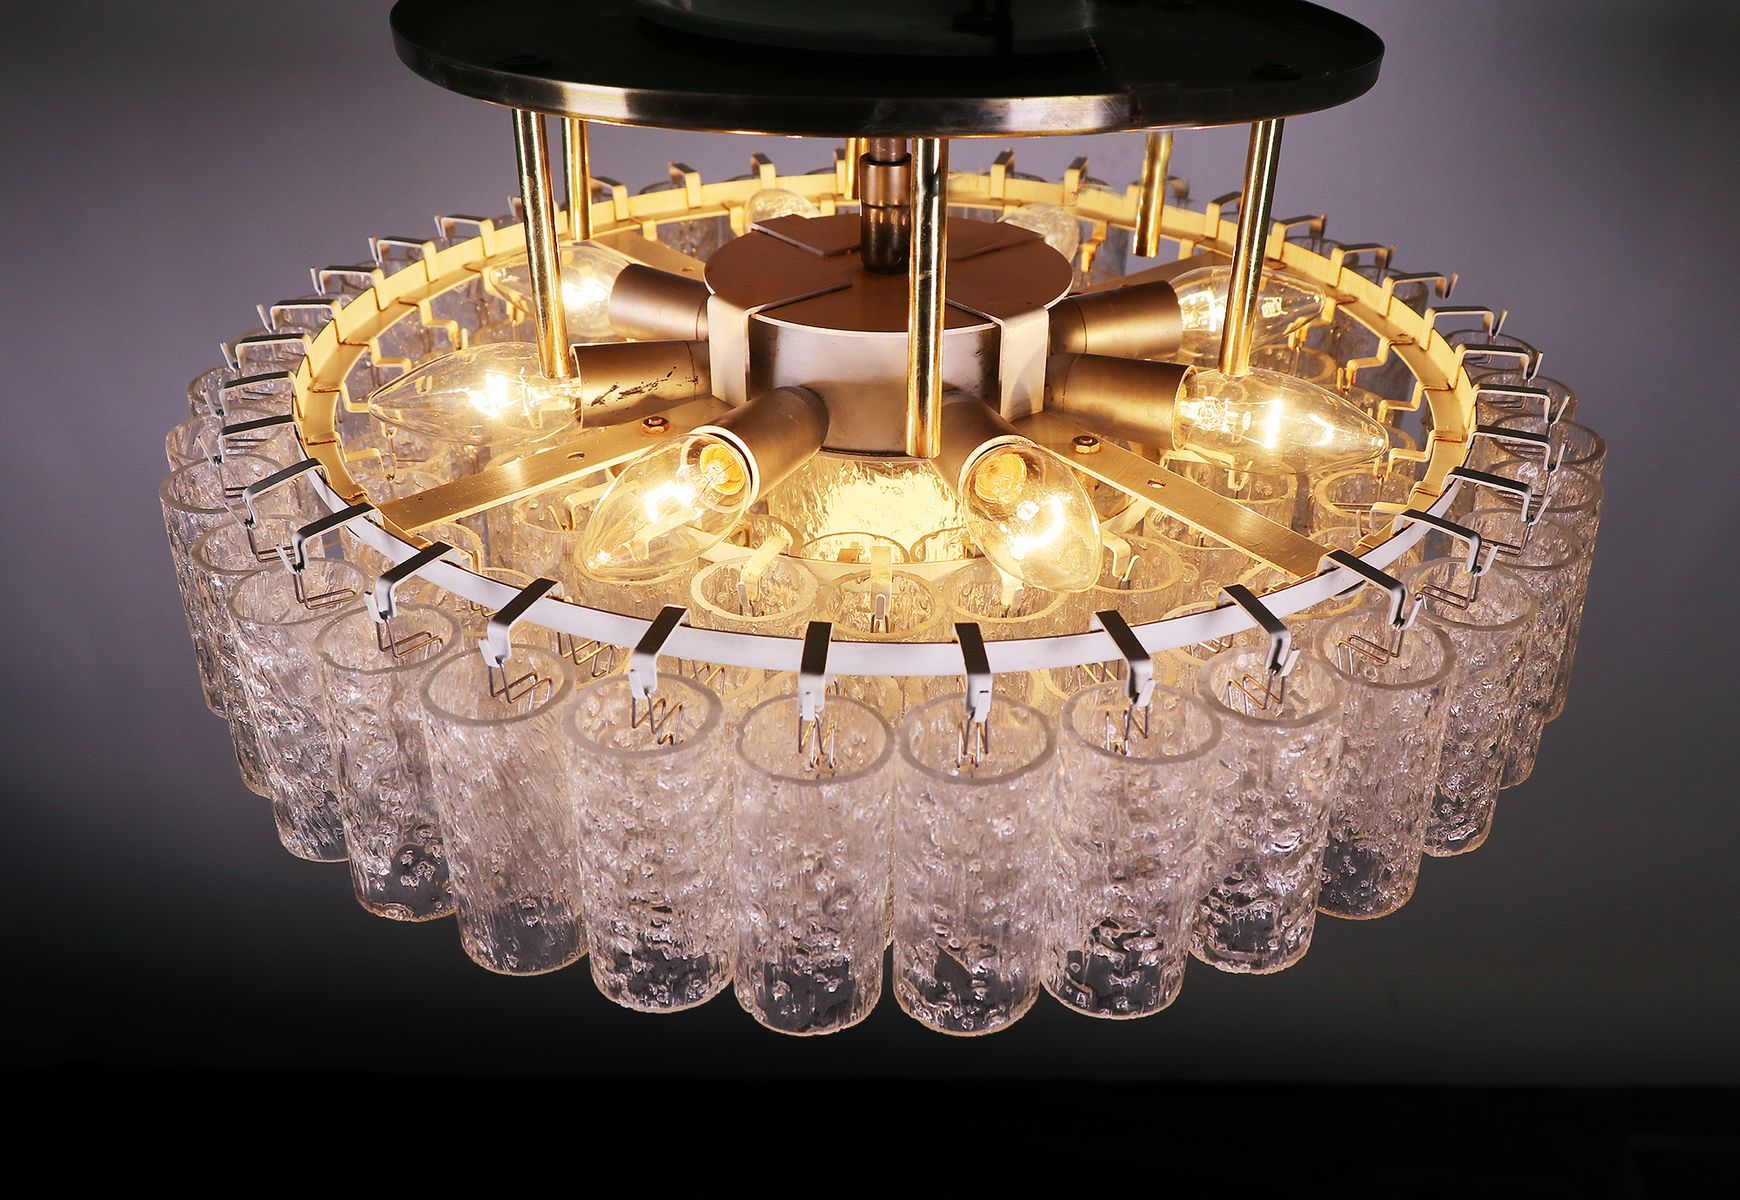 flush primo round mount tulum ceilings crystal transitional smsender co polished ceiling chandelier lights chrome